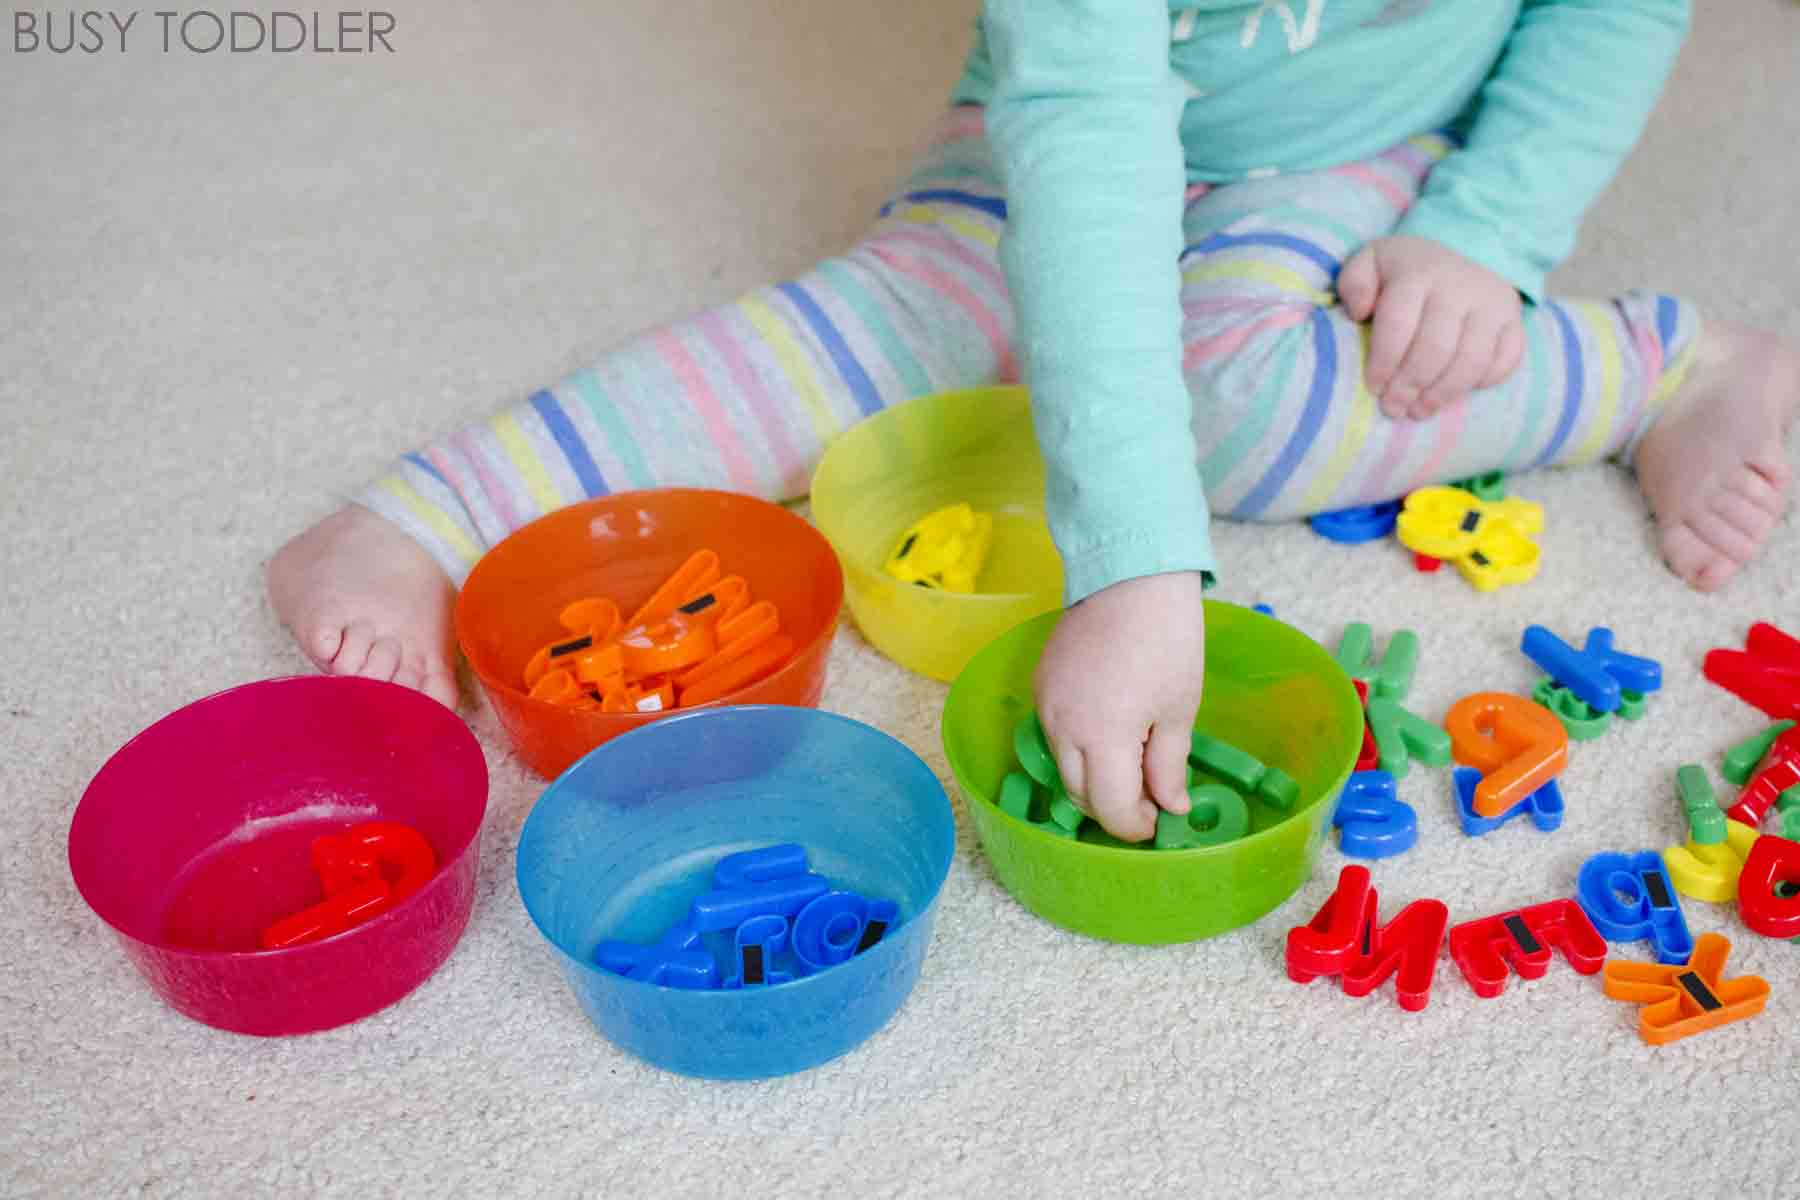 SORTING ACTIVITIES: Easy indoor activities for toddlers